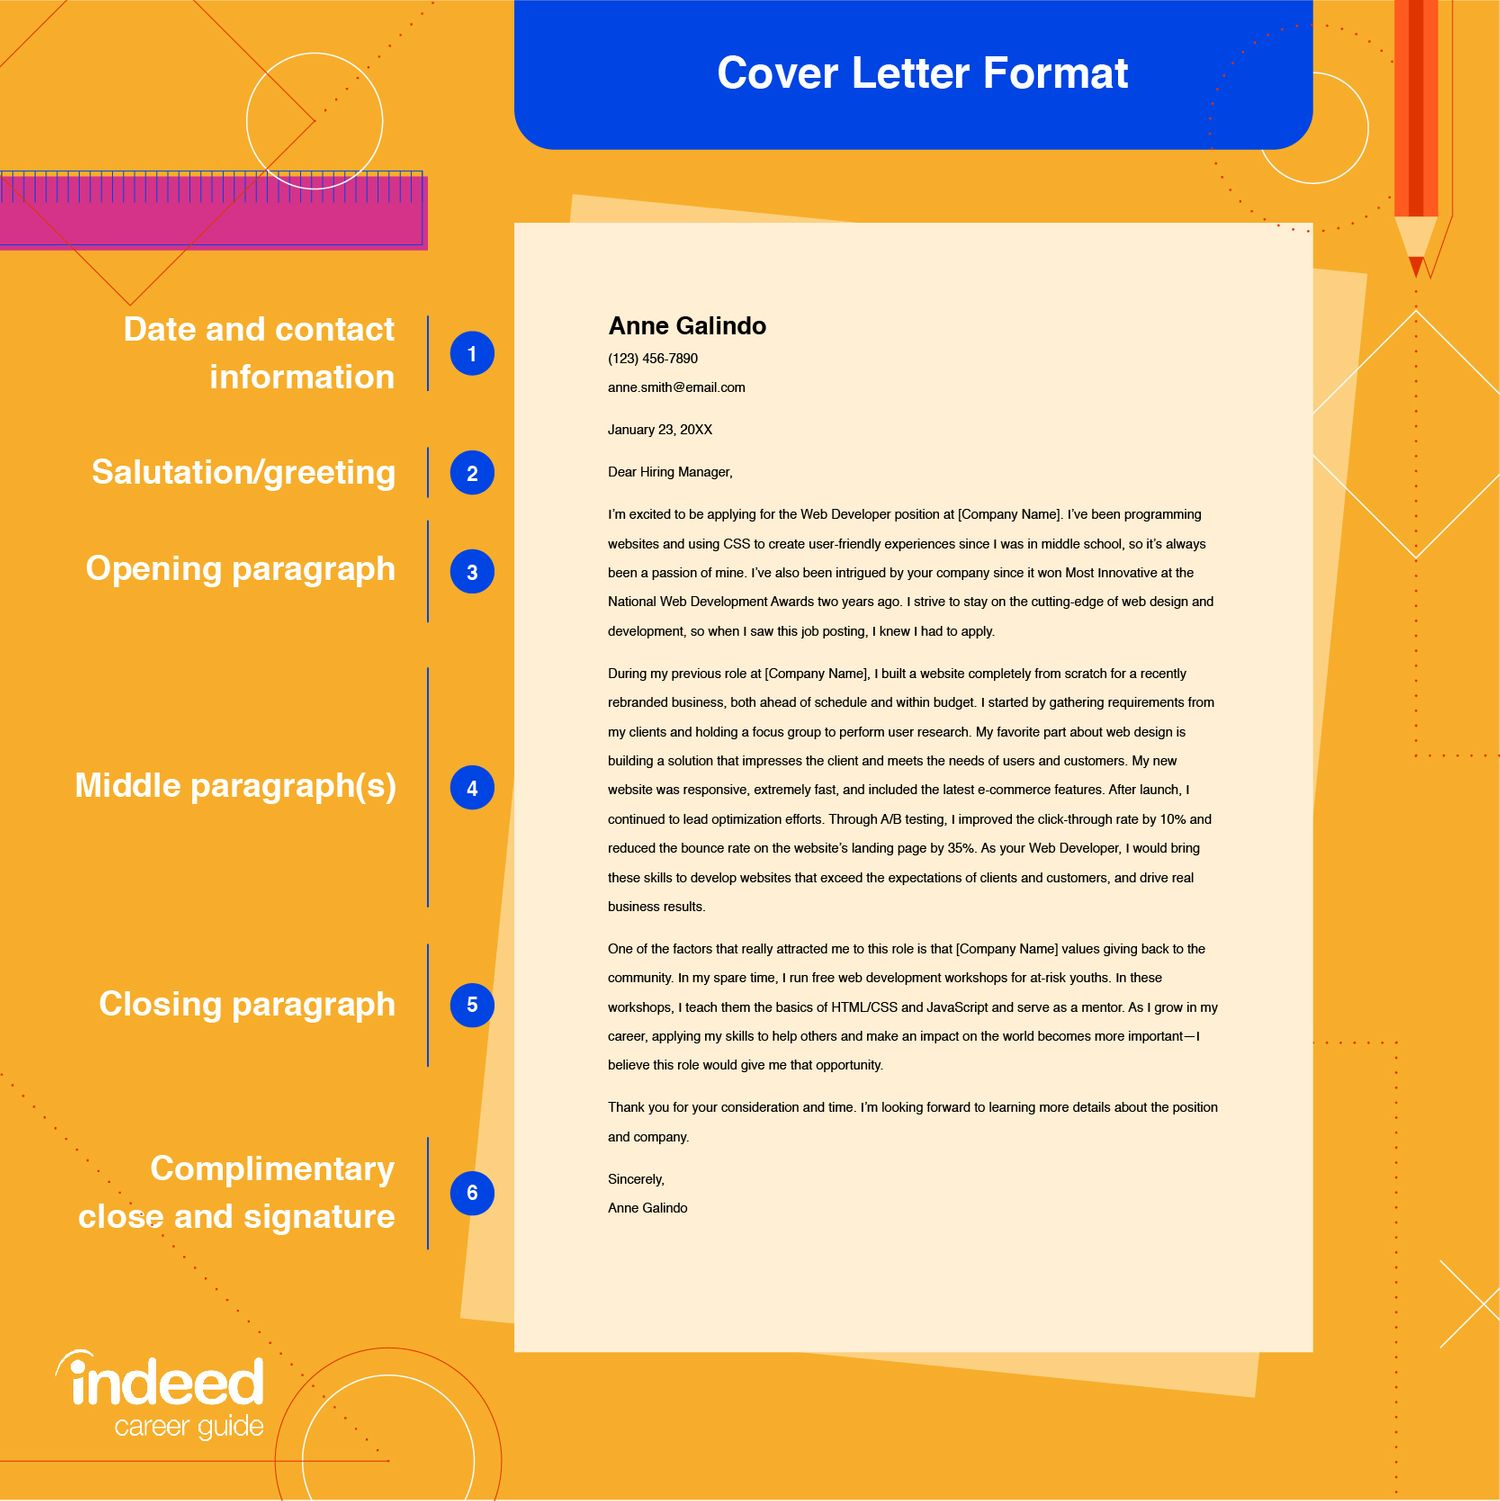 to write cover letter indeed cancel resume subscription resized graduate school template Resume Cancel Indeed Resume Subscription